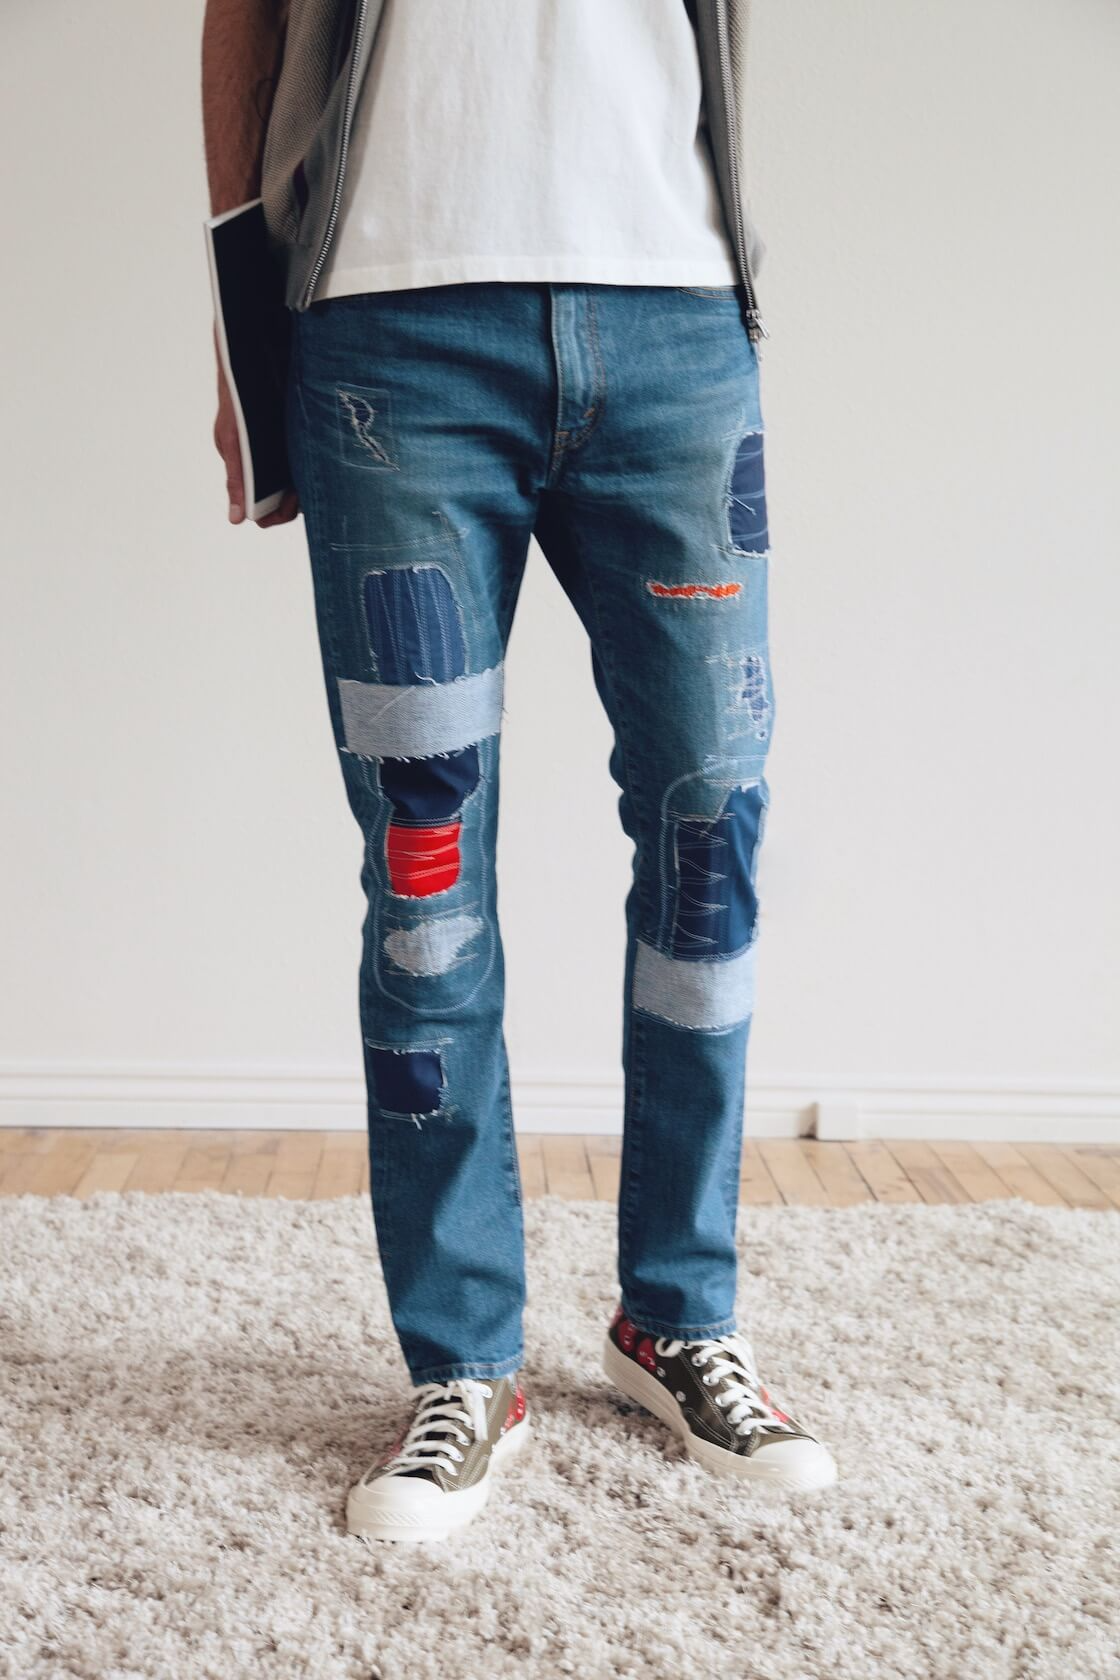 beams plus zip knit polo stripe, junya watanabe EYE x levi's patchwork 501 jeans, comme des garcons play x converse chuck taylors and fudge magazine on body